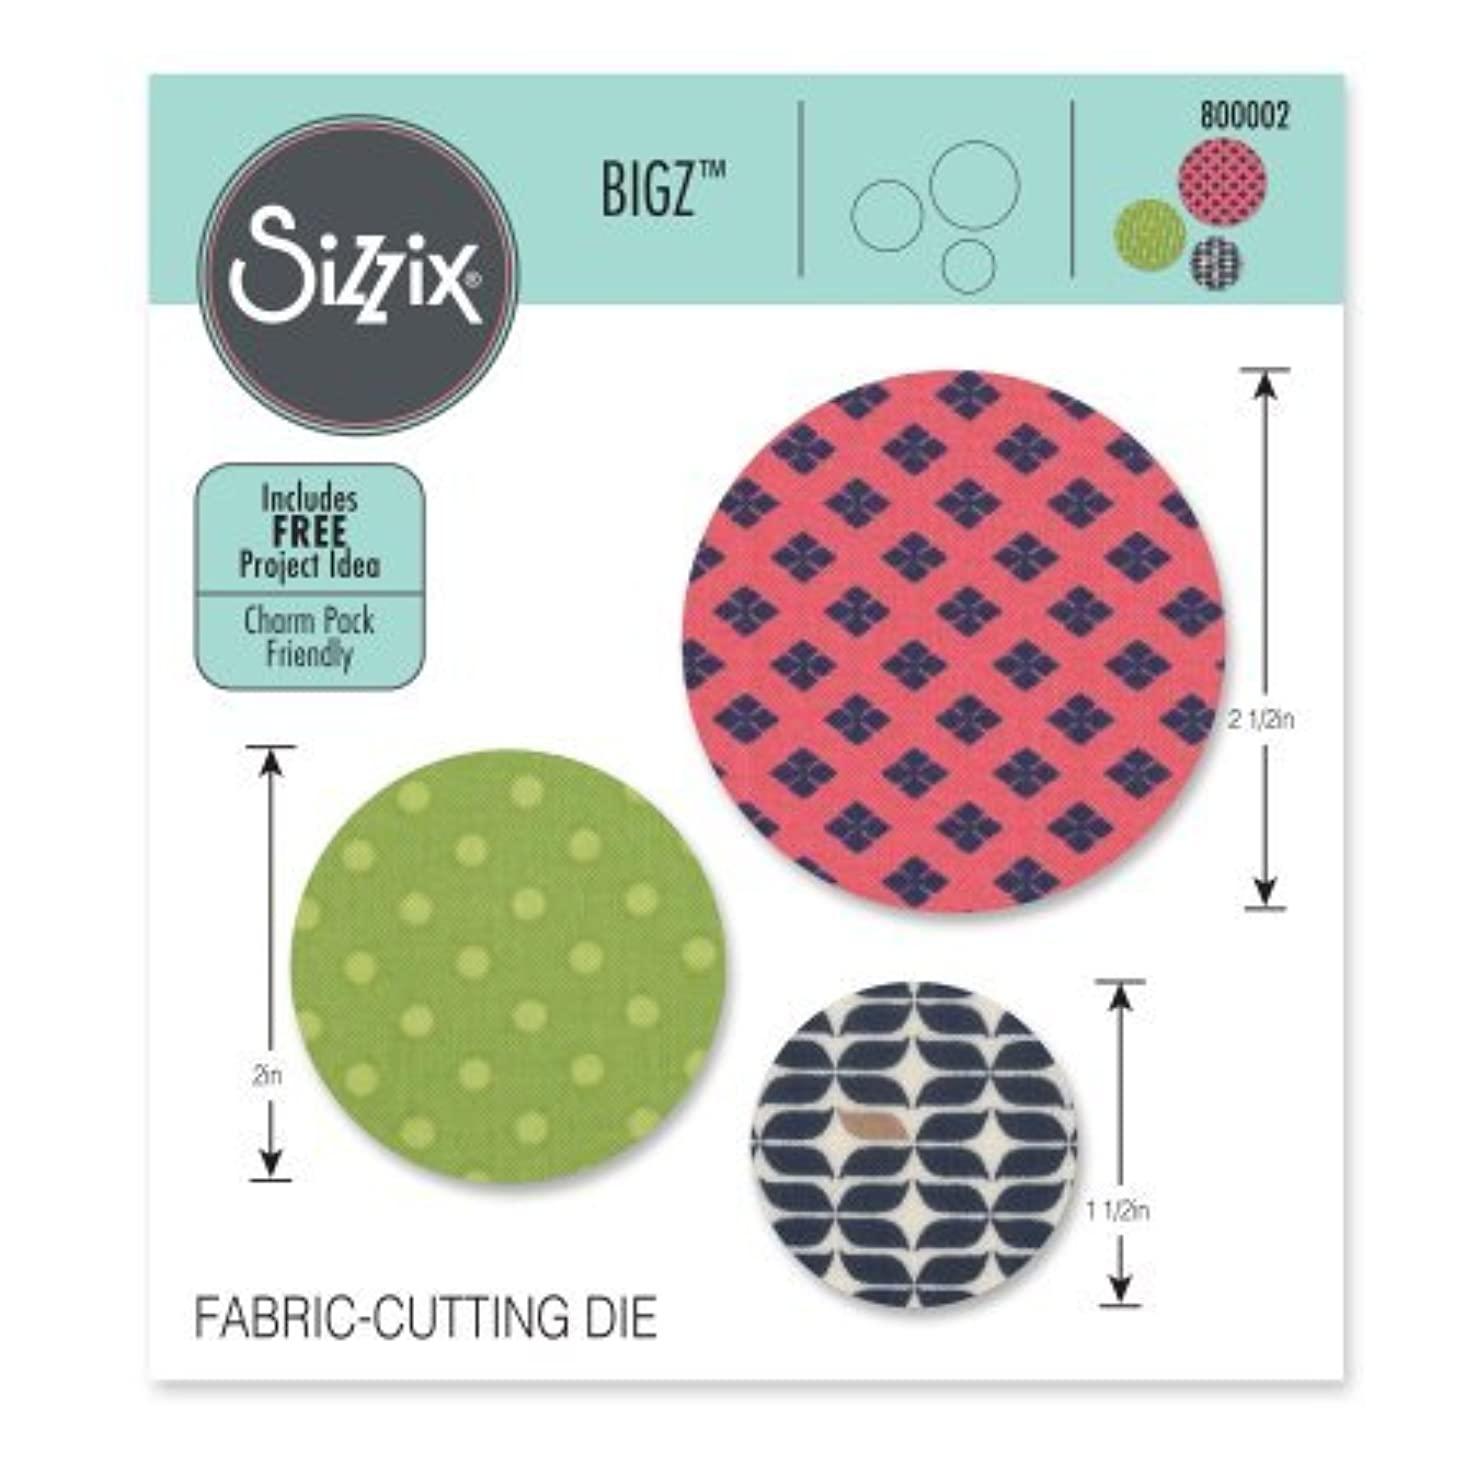 Sizzix - Bigz Die - Quilting & Scrapbooking - Die Cutting Template - Circles 1 1/2 in 2 in and 2 1/2 in